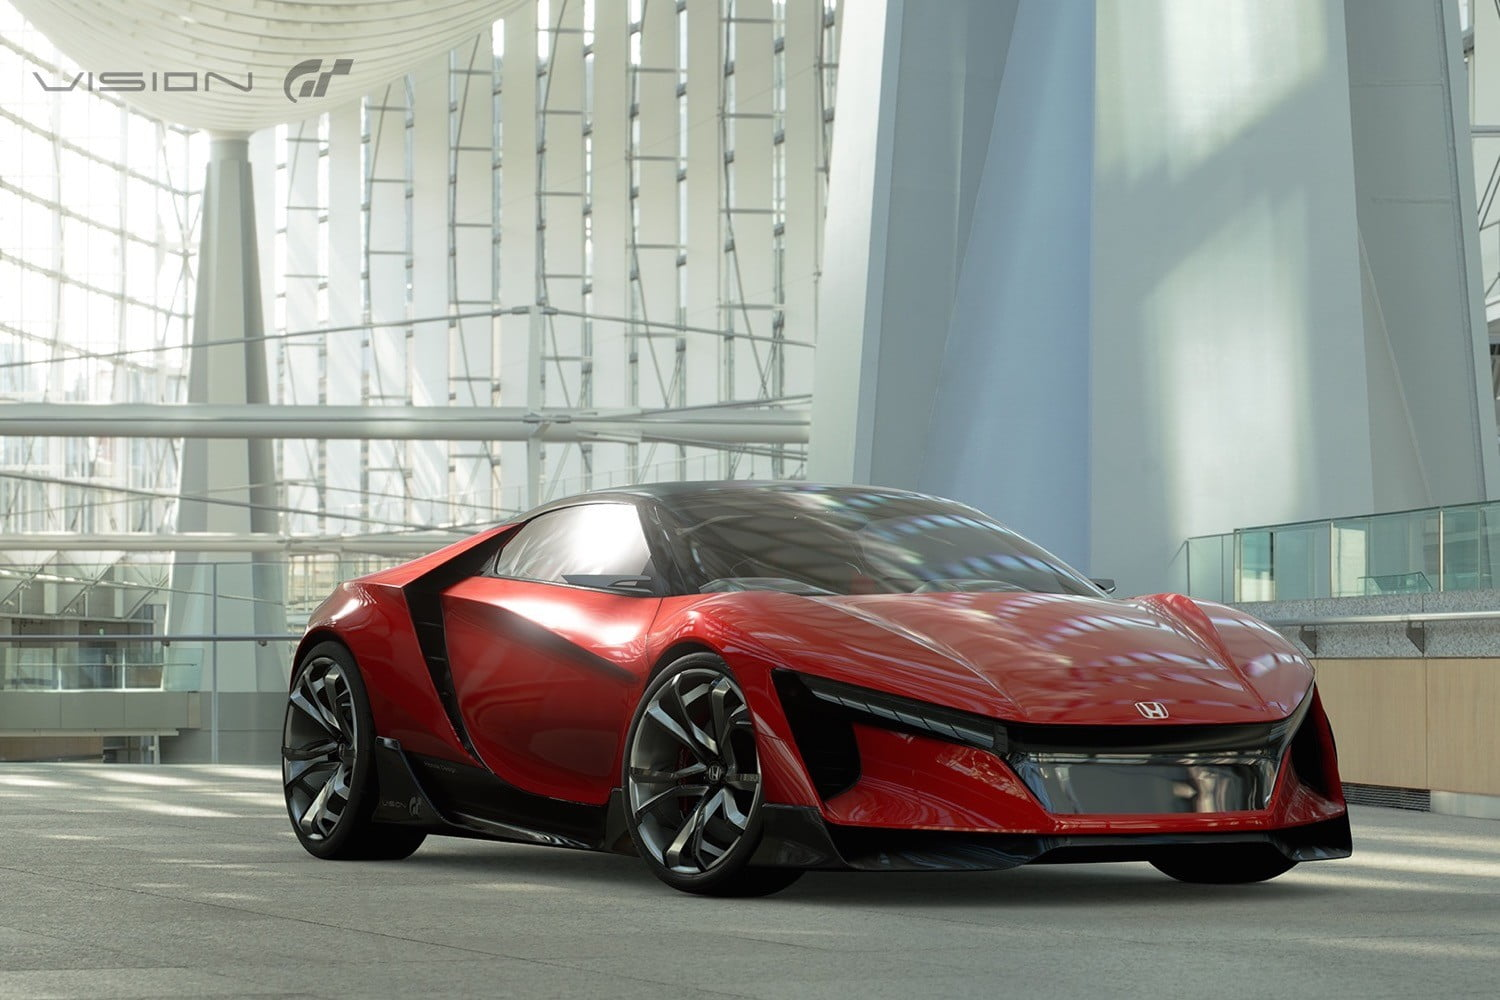 Honda Sports Vision Gran Turismo Concept Photos Details Specs Digital Trends